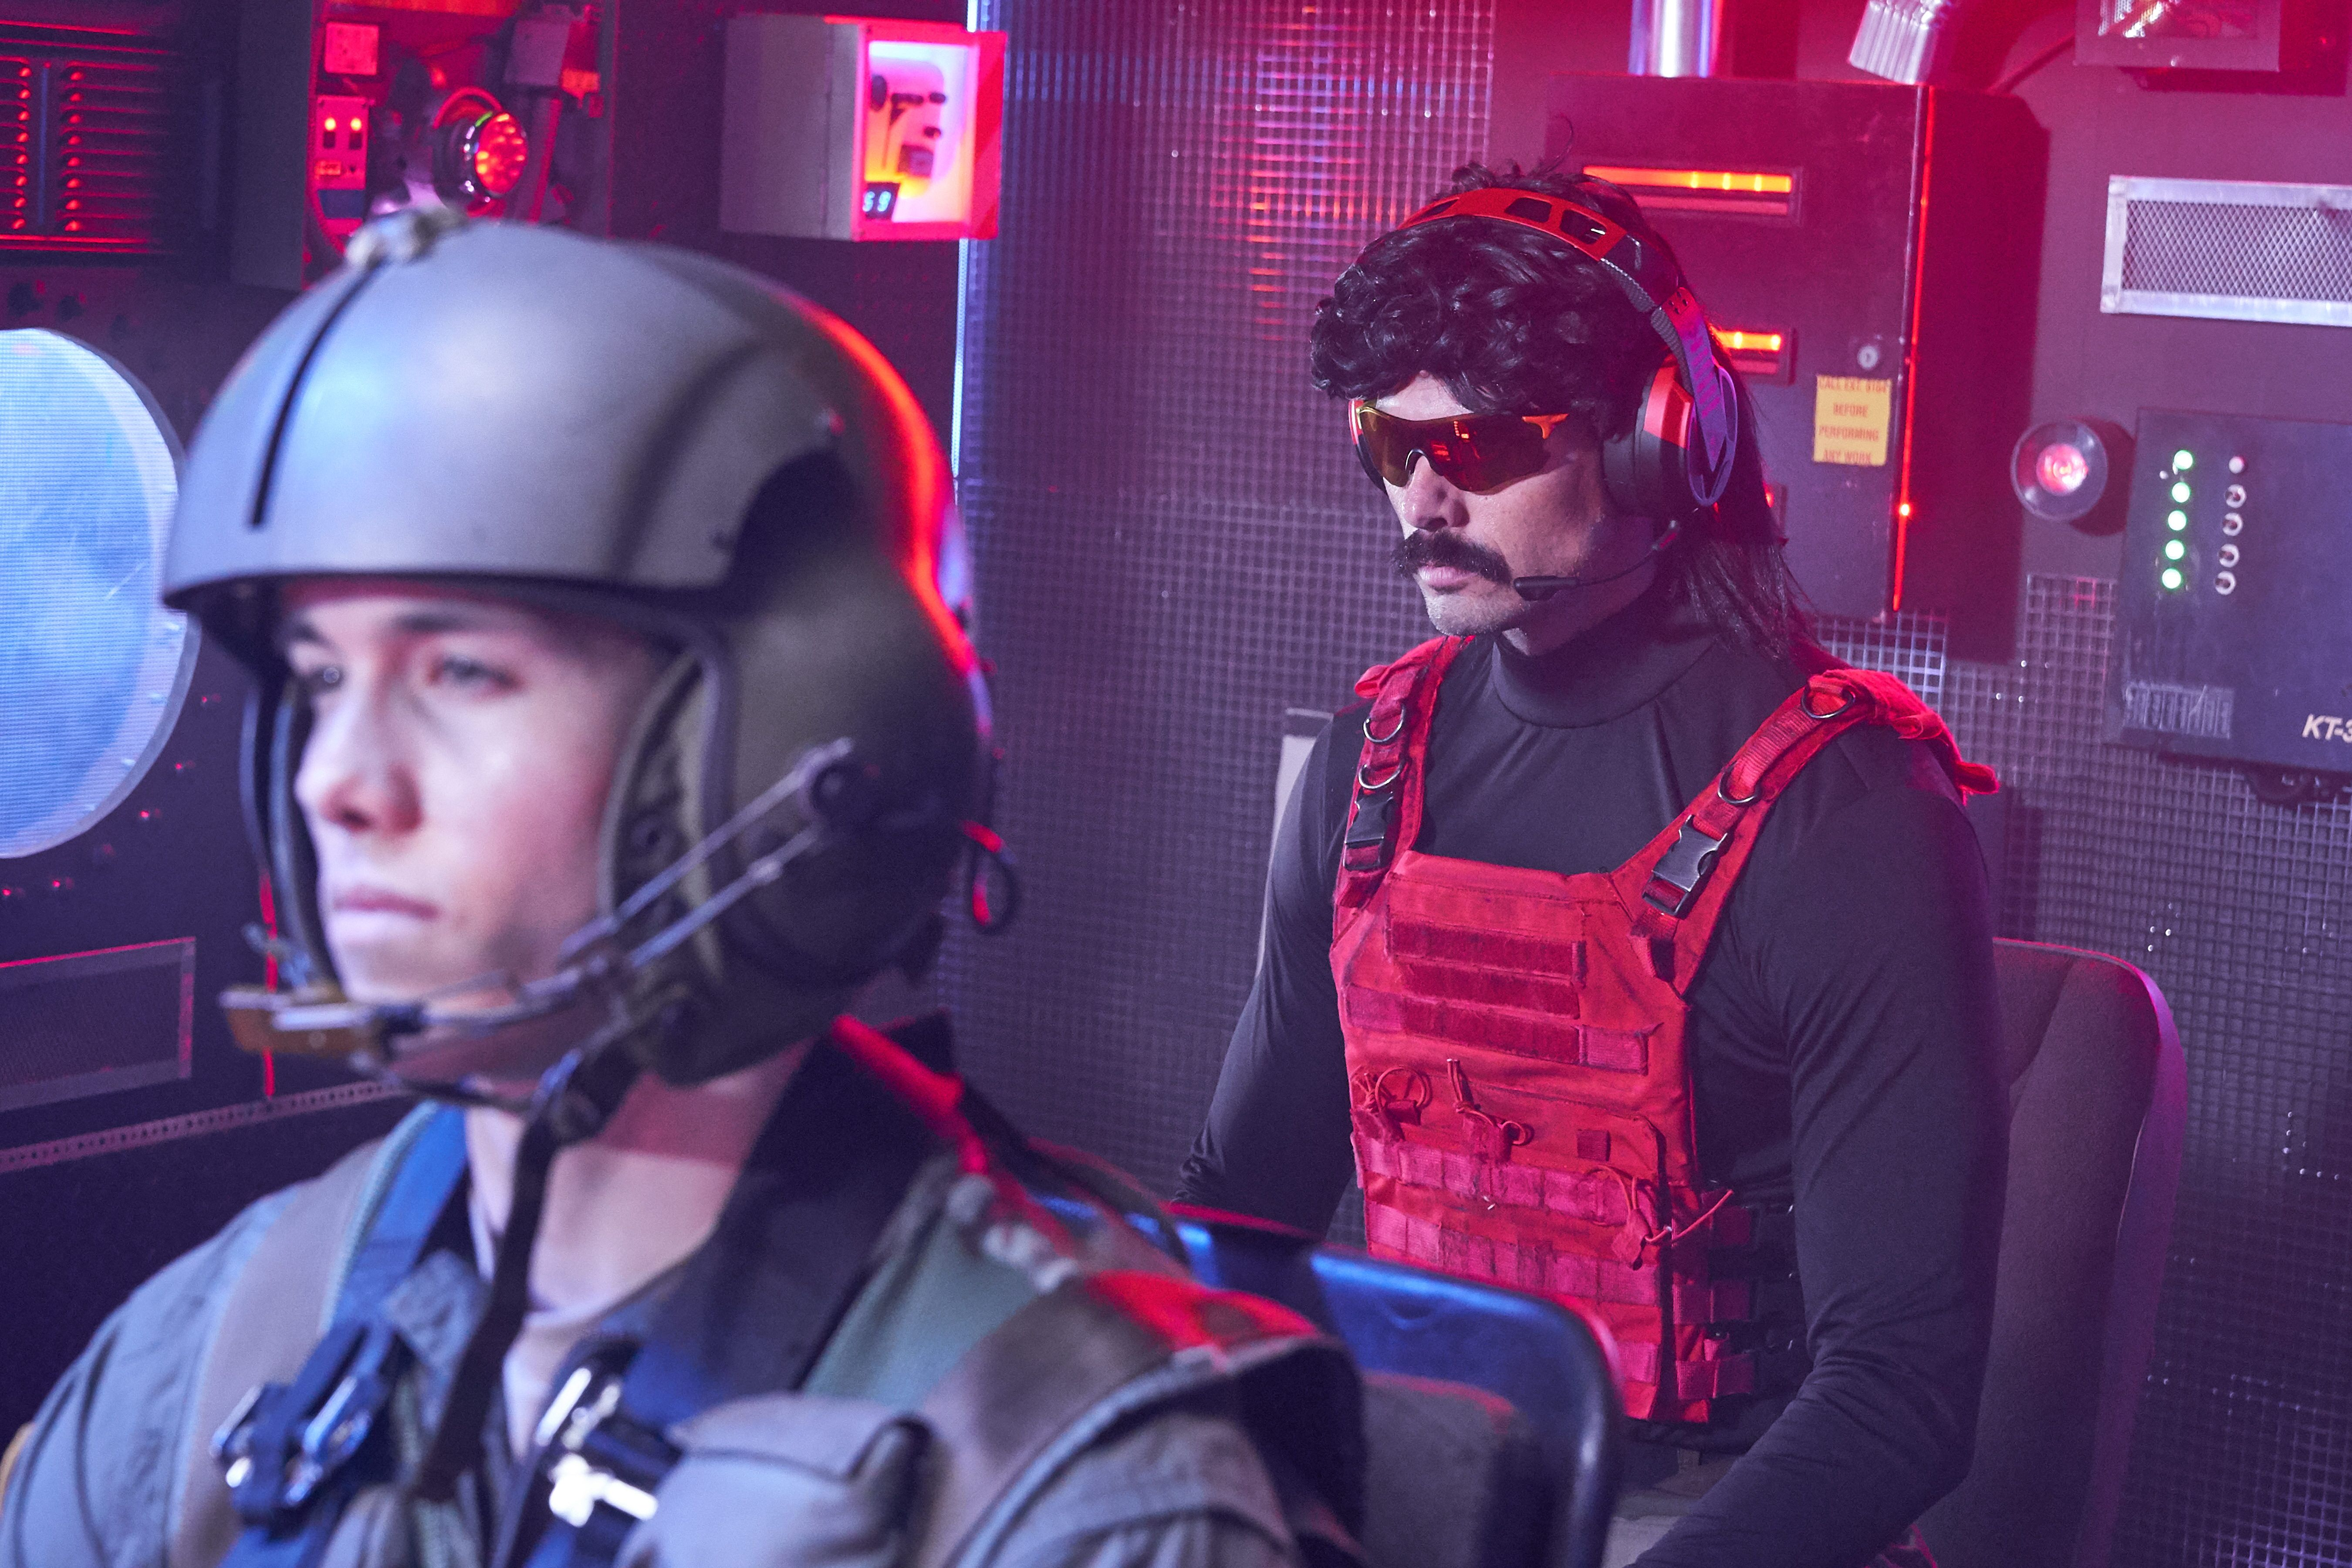 Dr Disrespect: Streamer knows the reason for being banned from Twitch